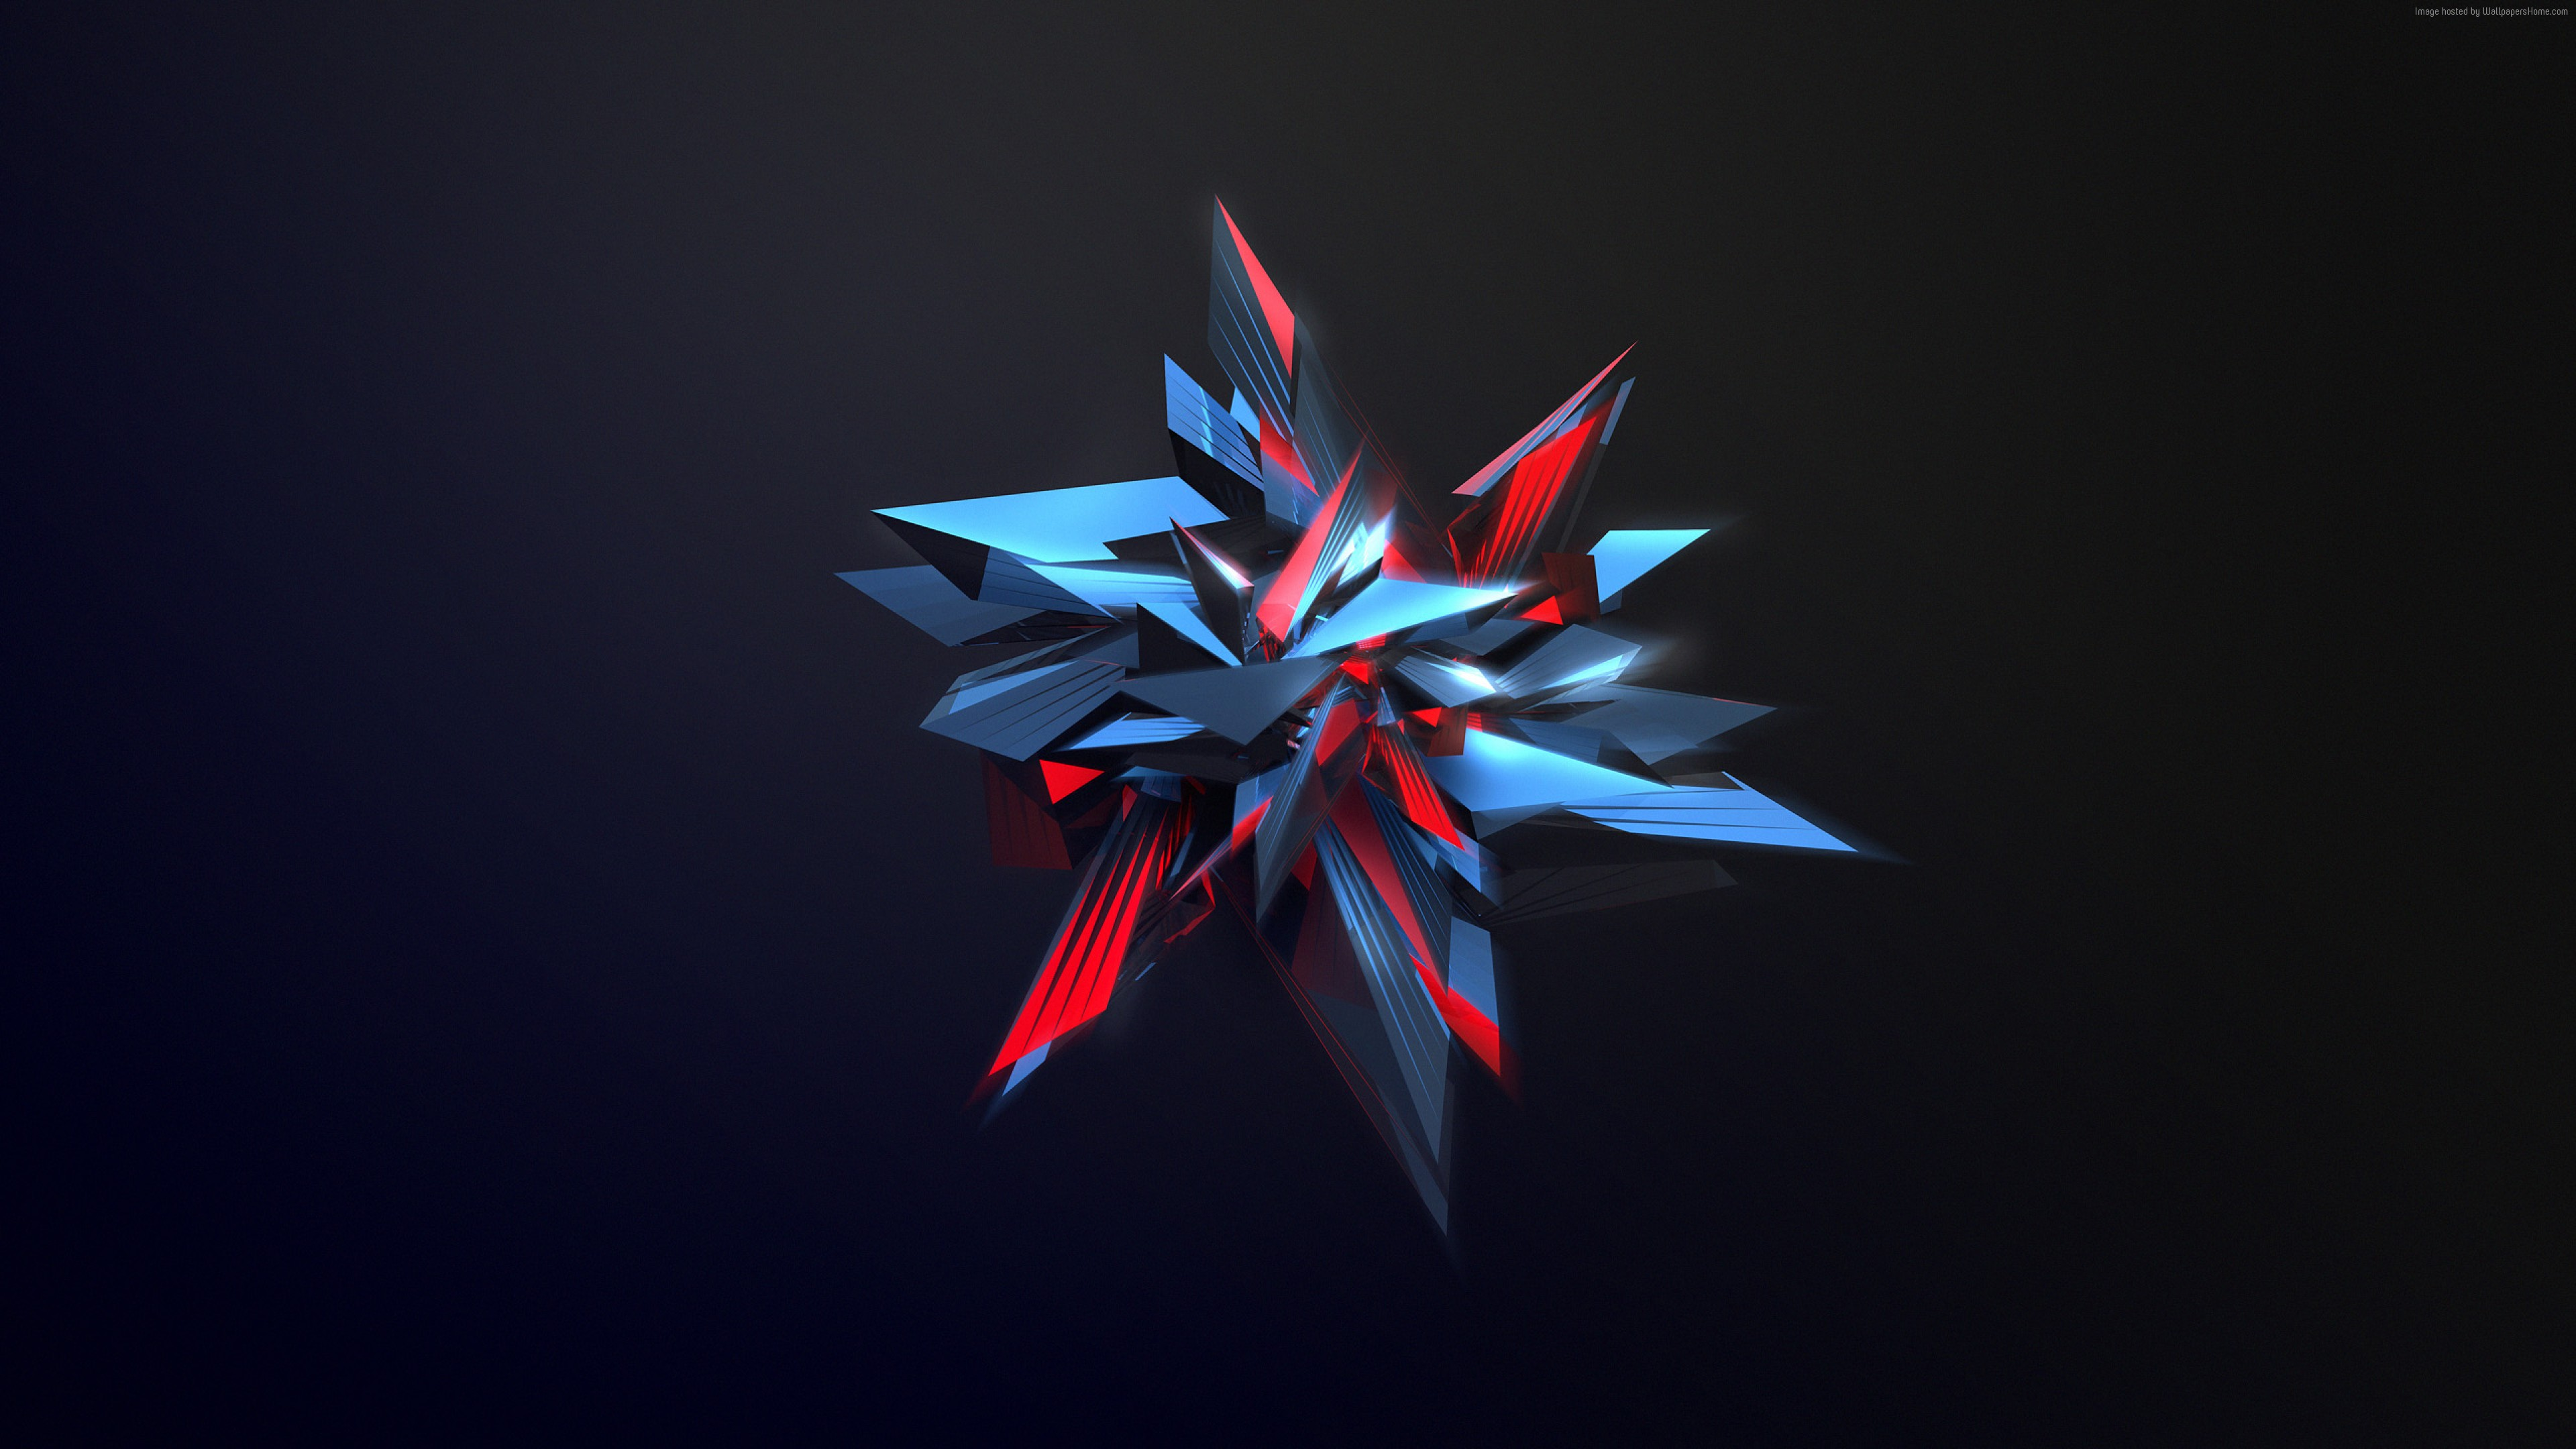 Wallpaper polygon, 4k, HD wallpaper, 3d, Abstract